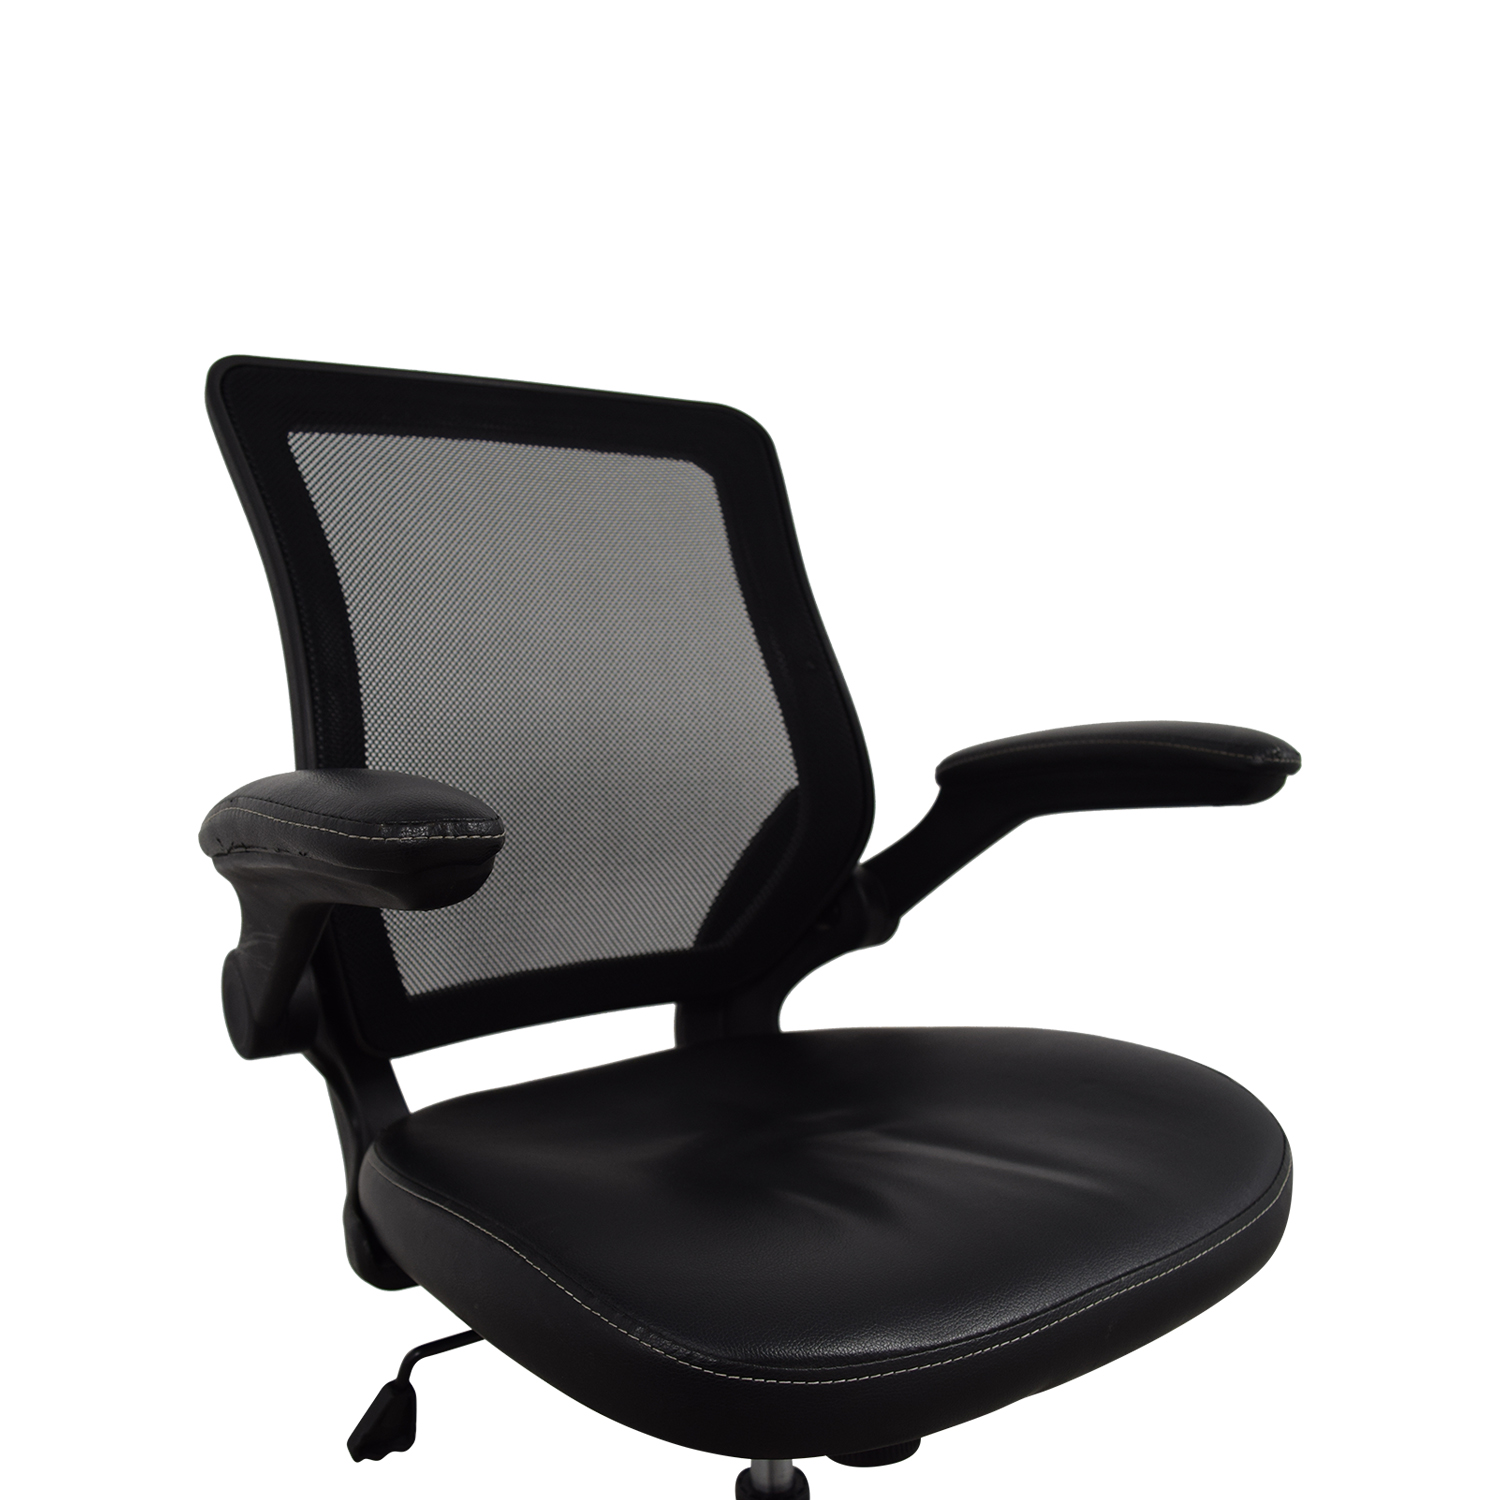 72 OFF  Adjustable Black Office Arm Chair  Chairs